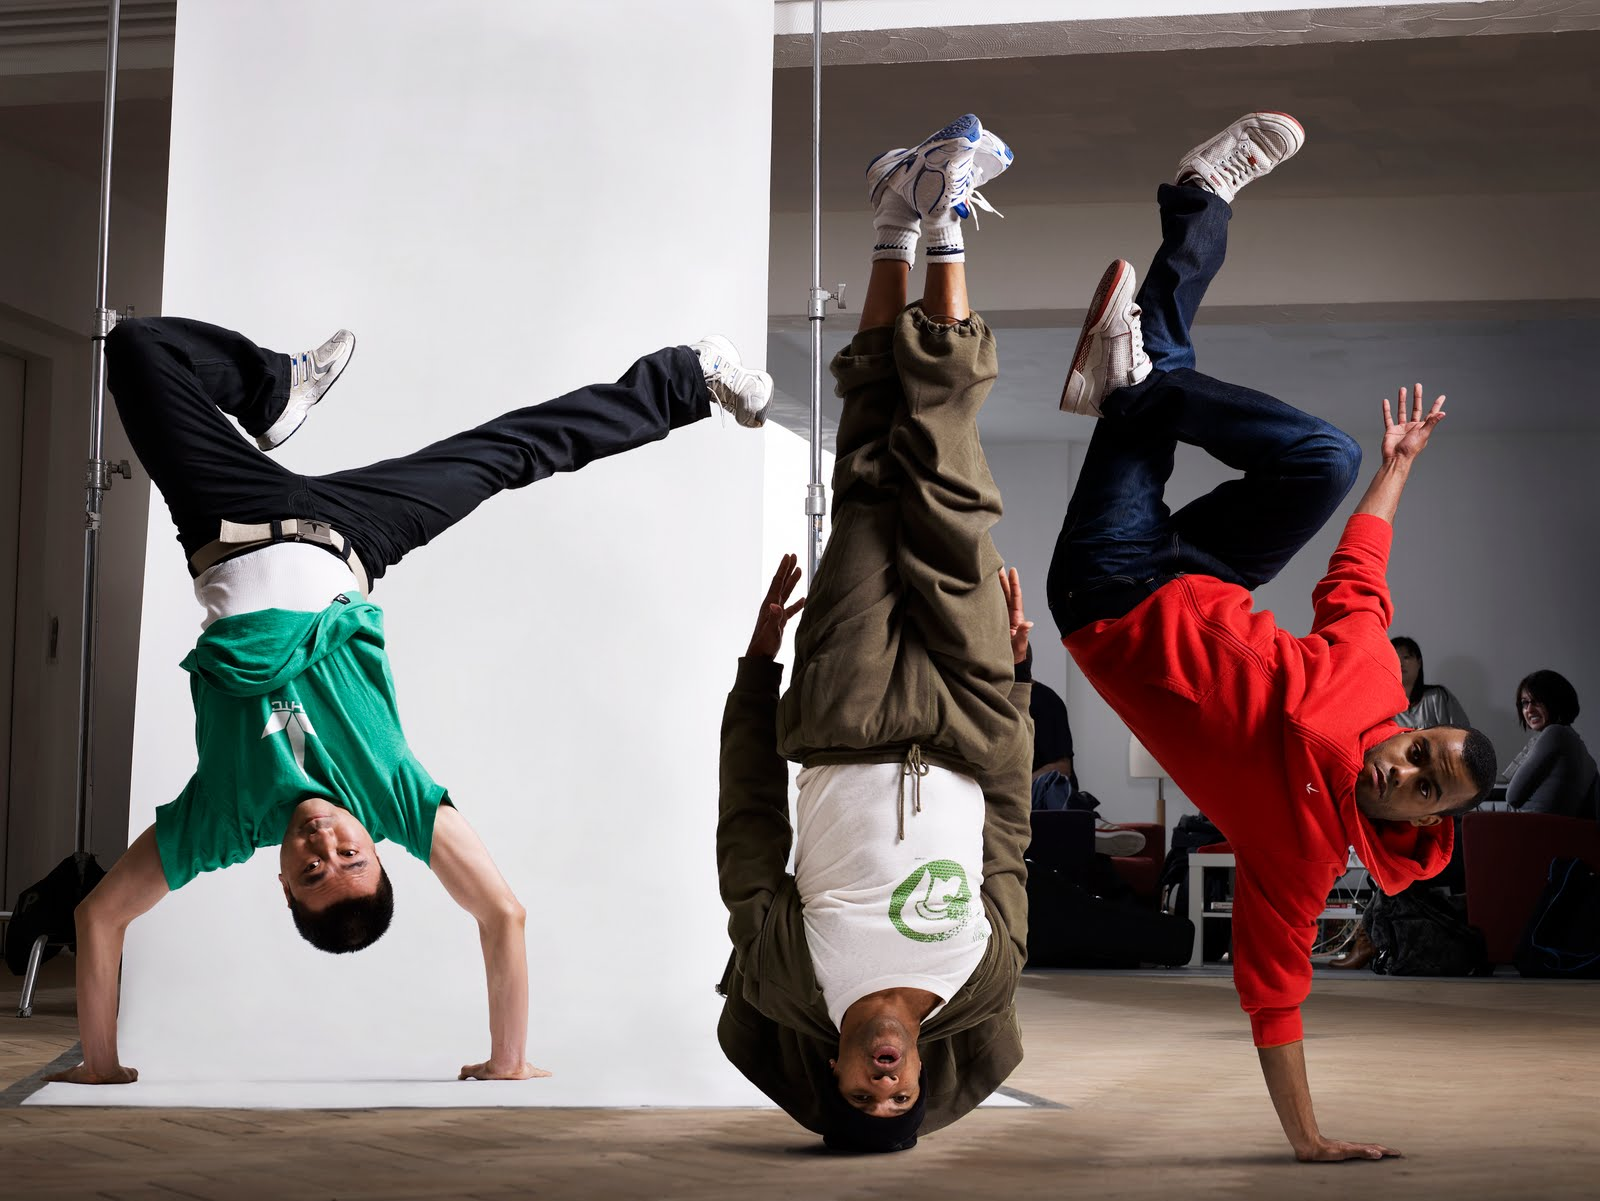 break dancing Define break dancing break dancing synonyms, break dancing pronunciation, break dancing translation, english dictionary definition of break dancing also break anc ng n.